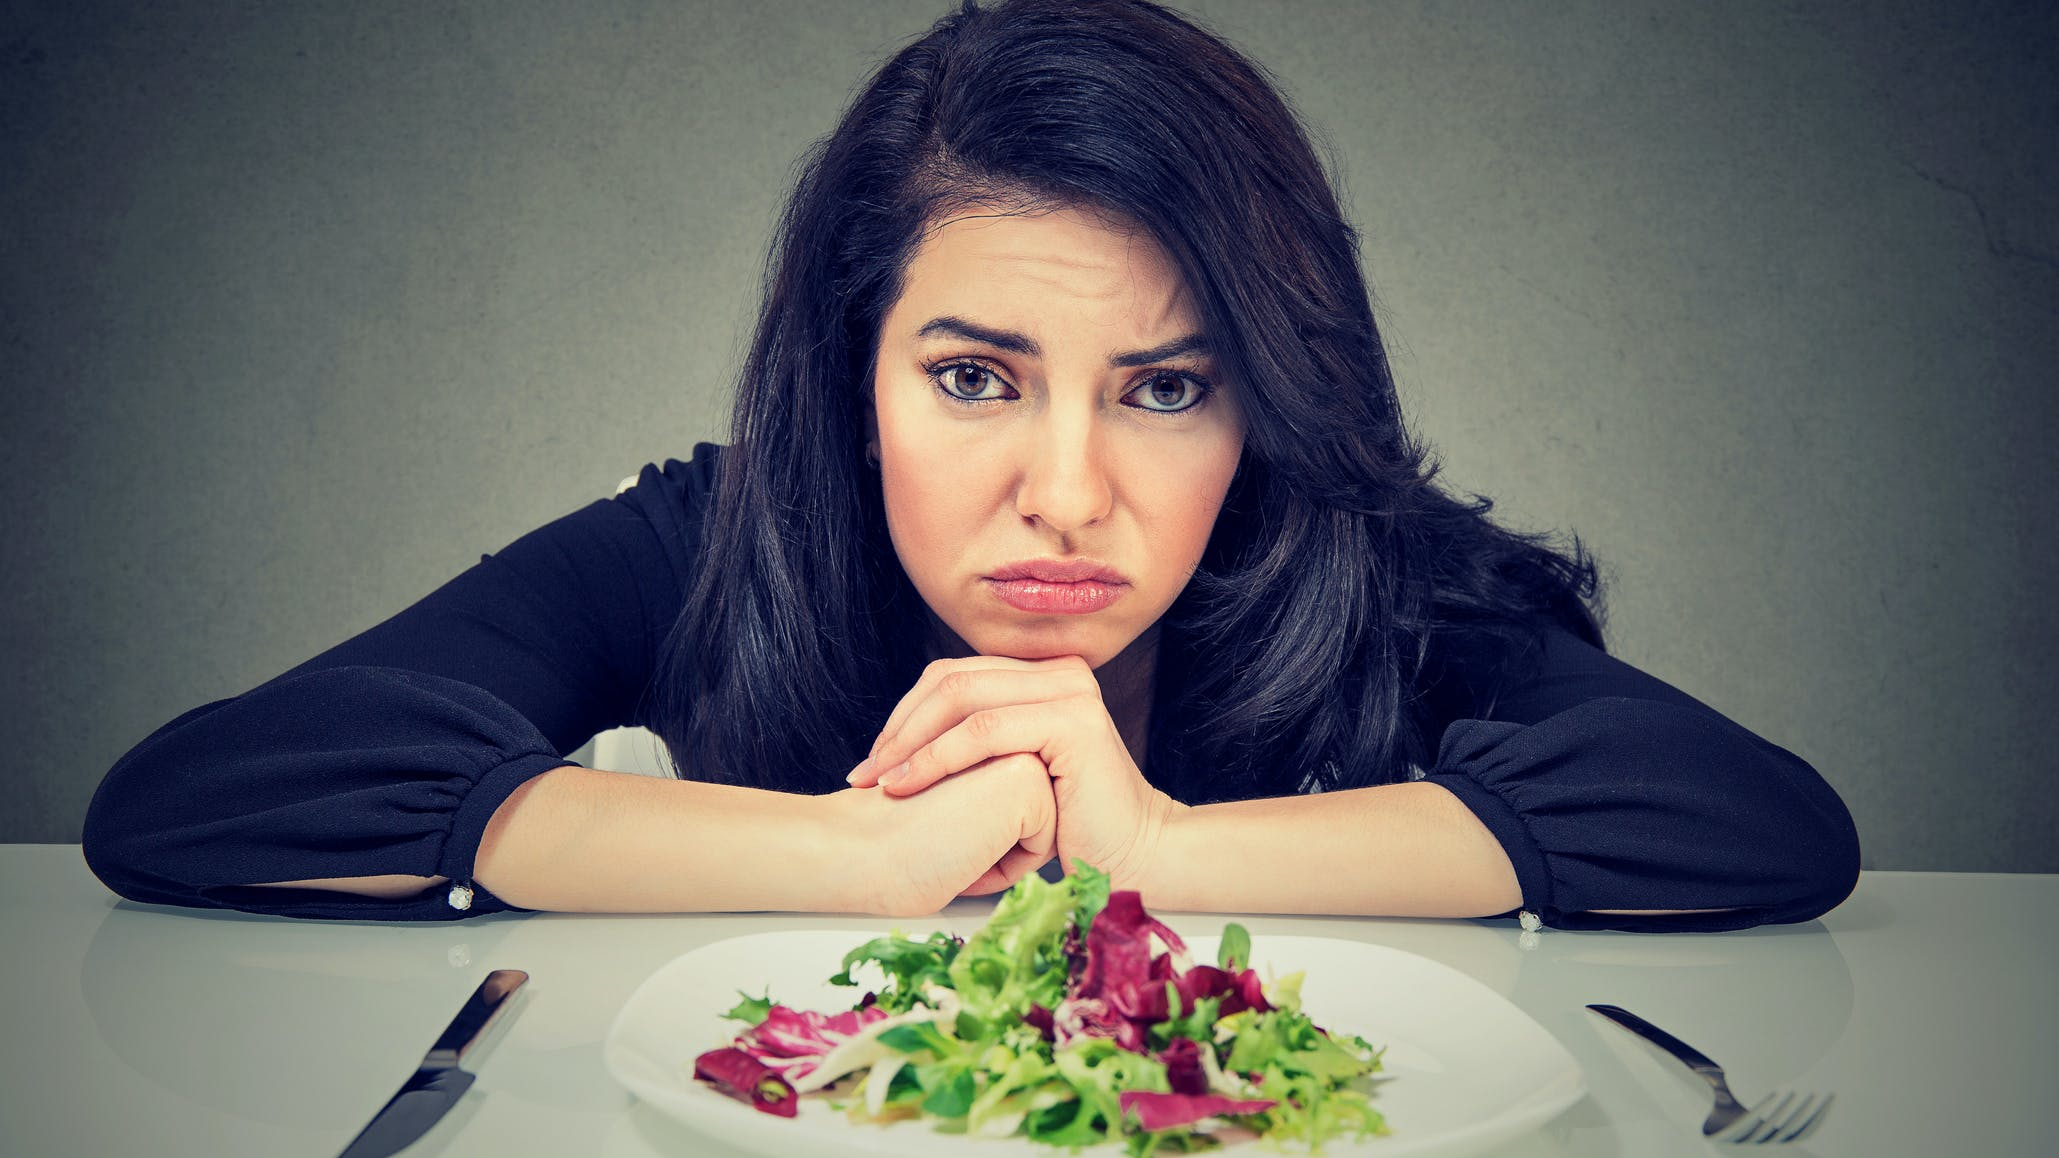 Cutting calories won't solve your weight issues – do this instead